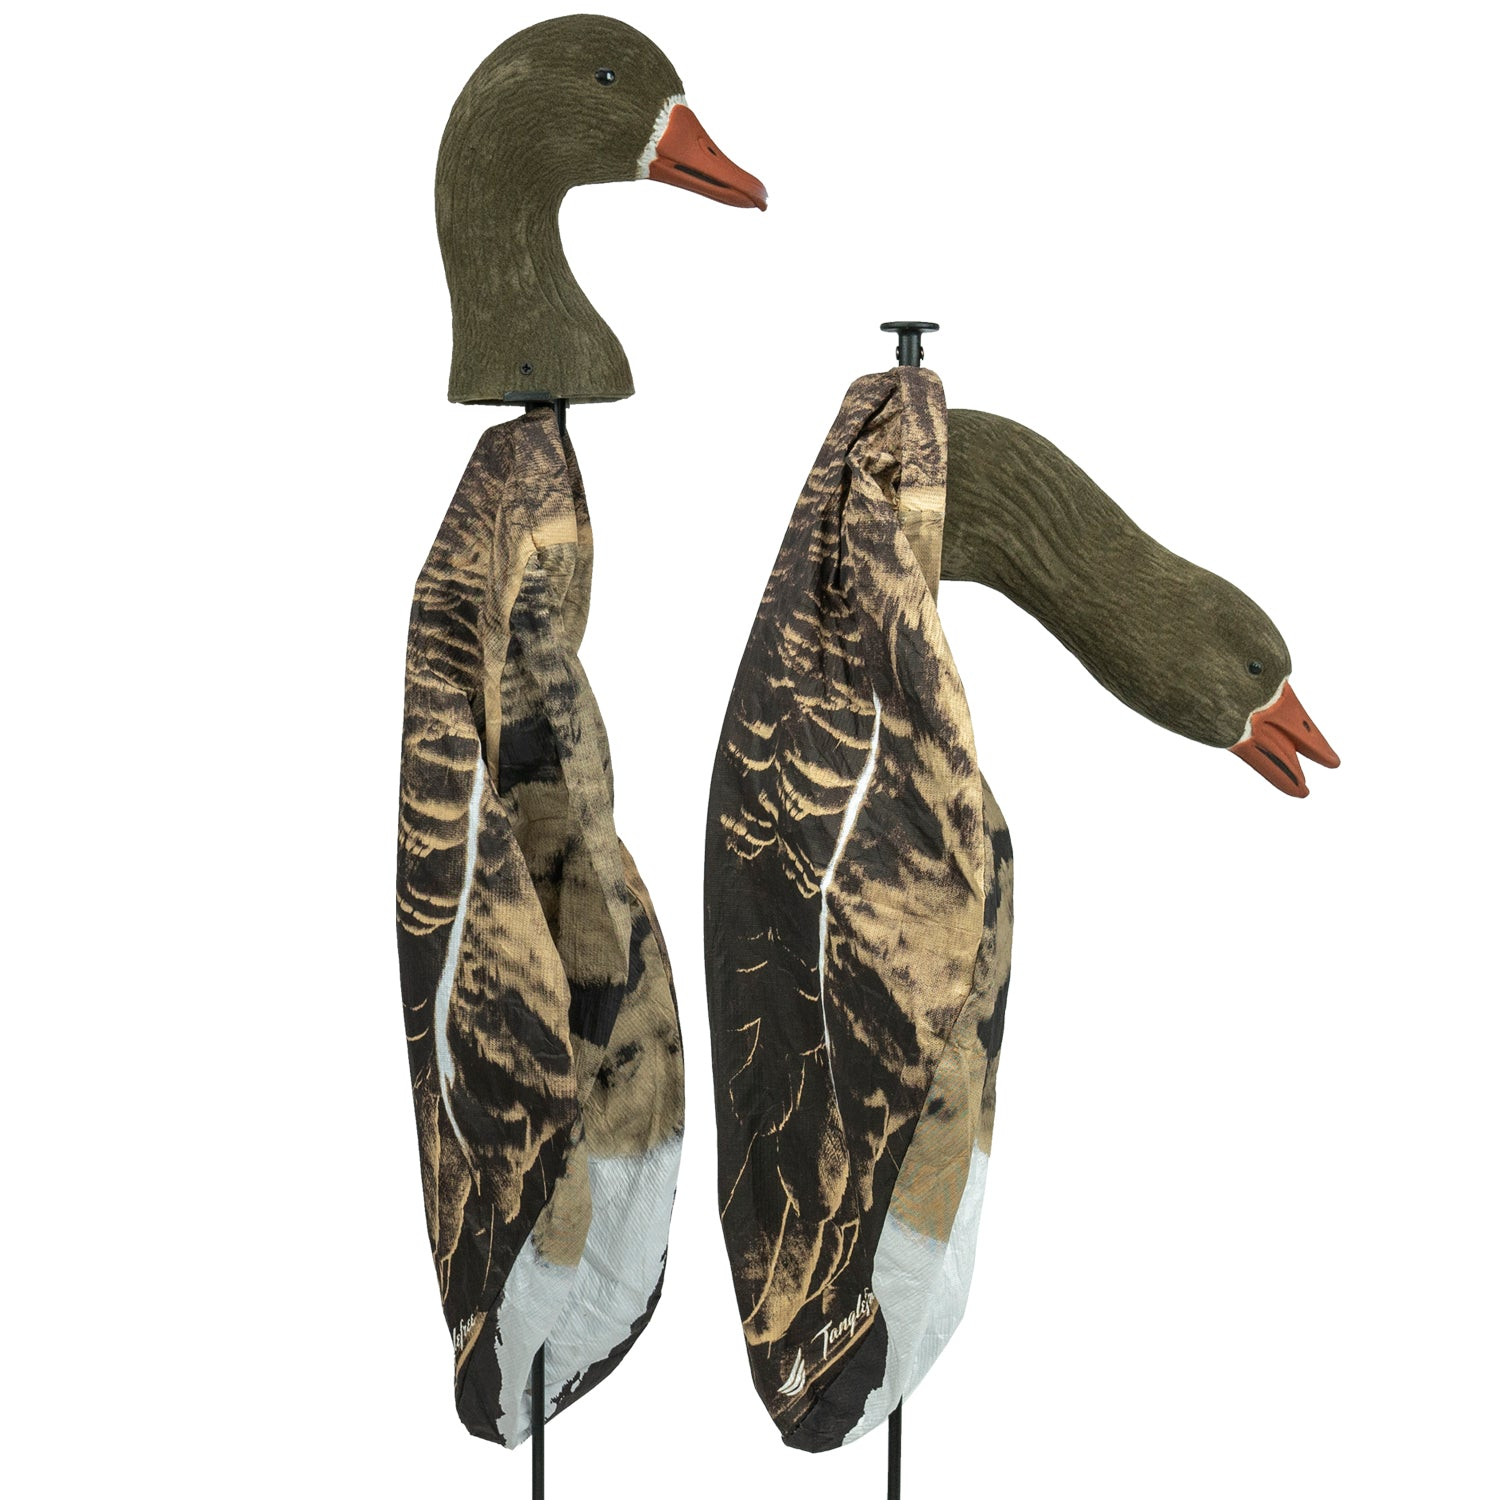 Specklebelly Goose Slammer Sock – 12 Pack w/ Flocked 3d Head